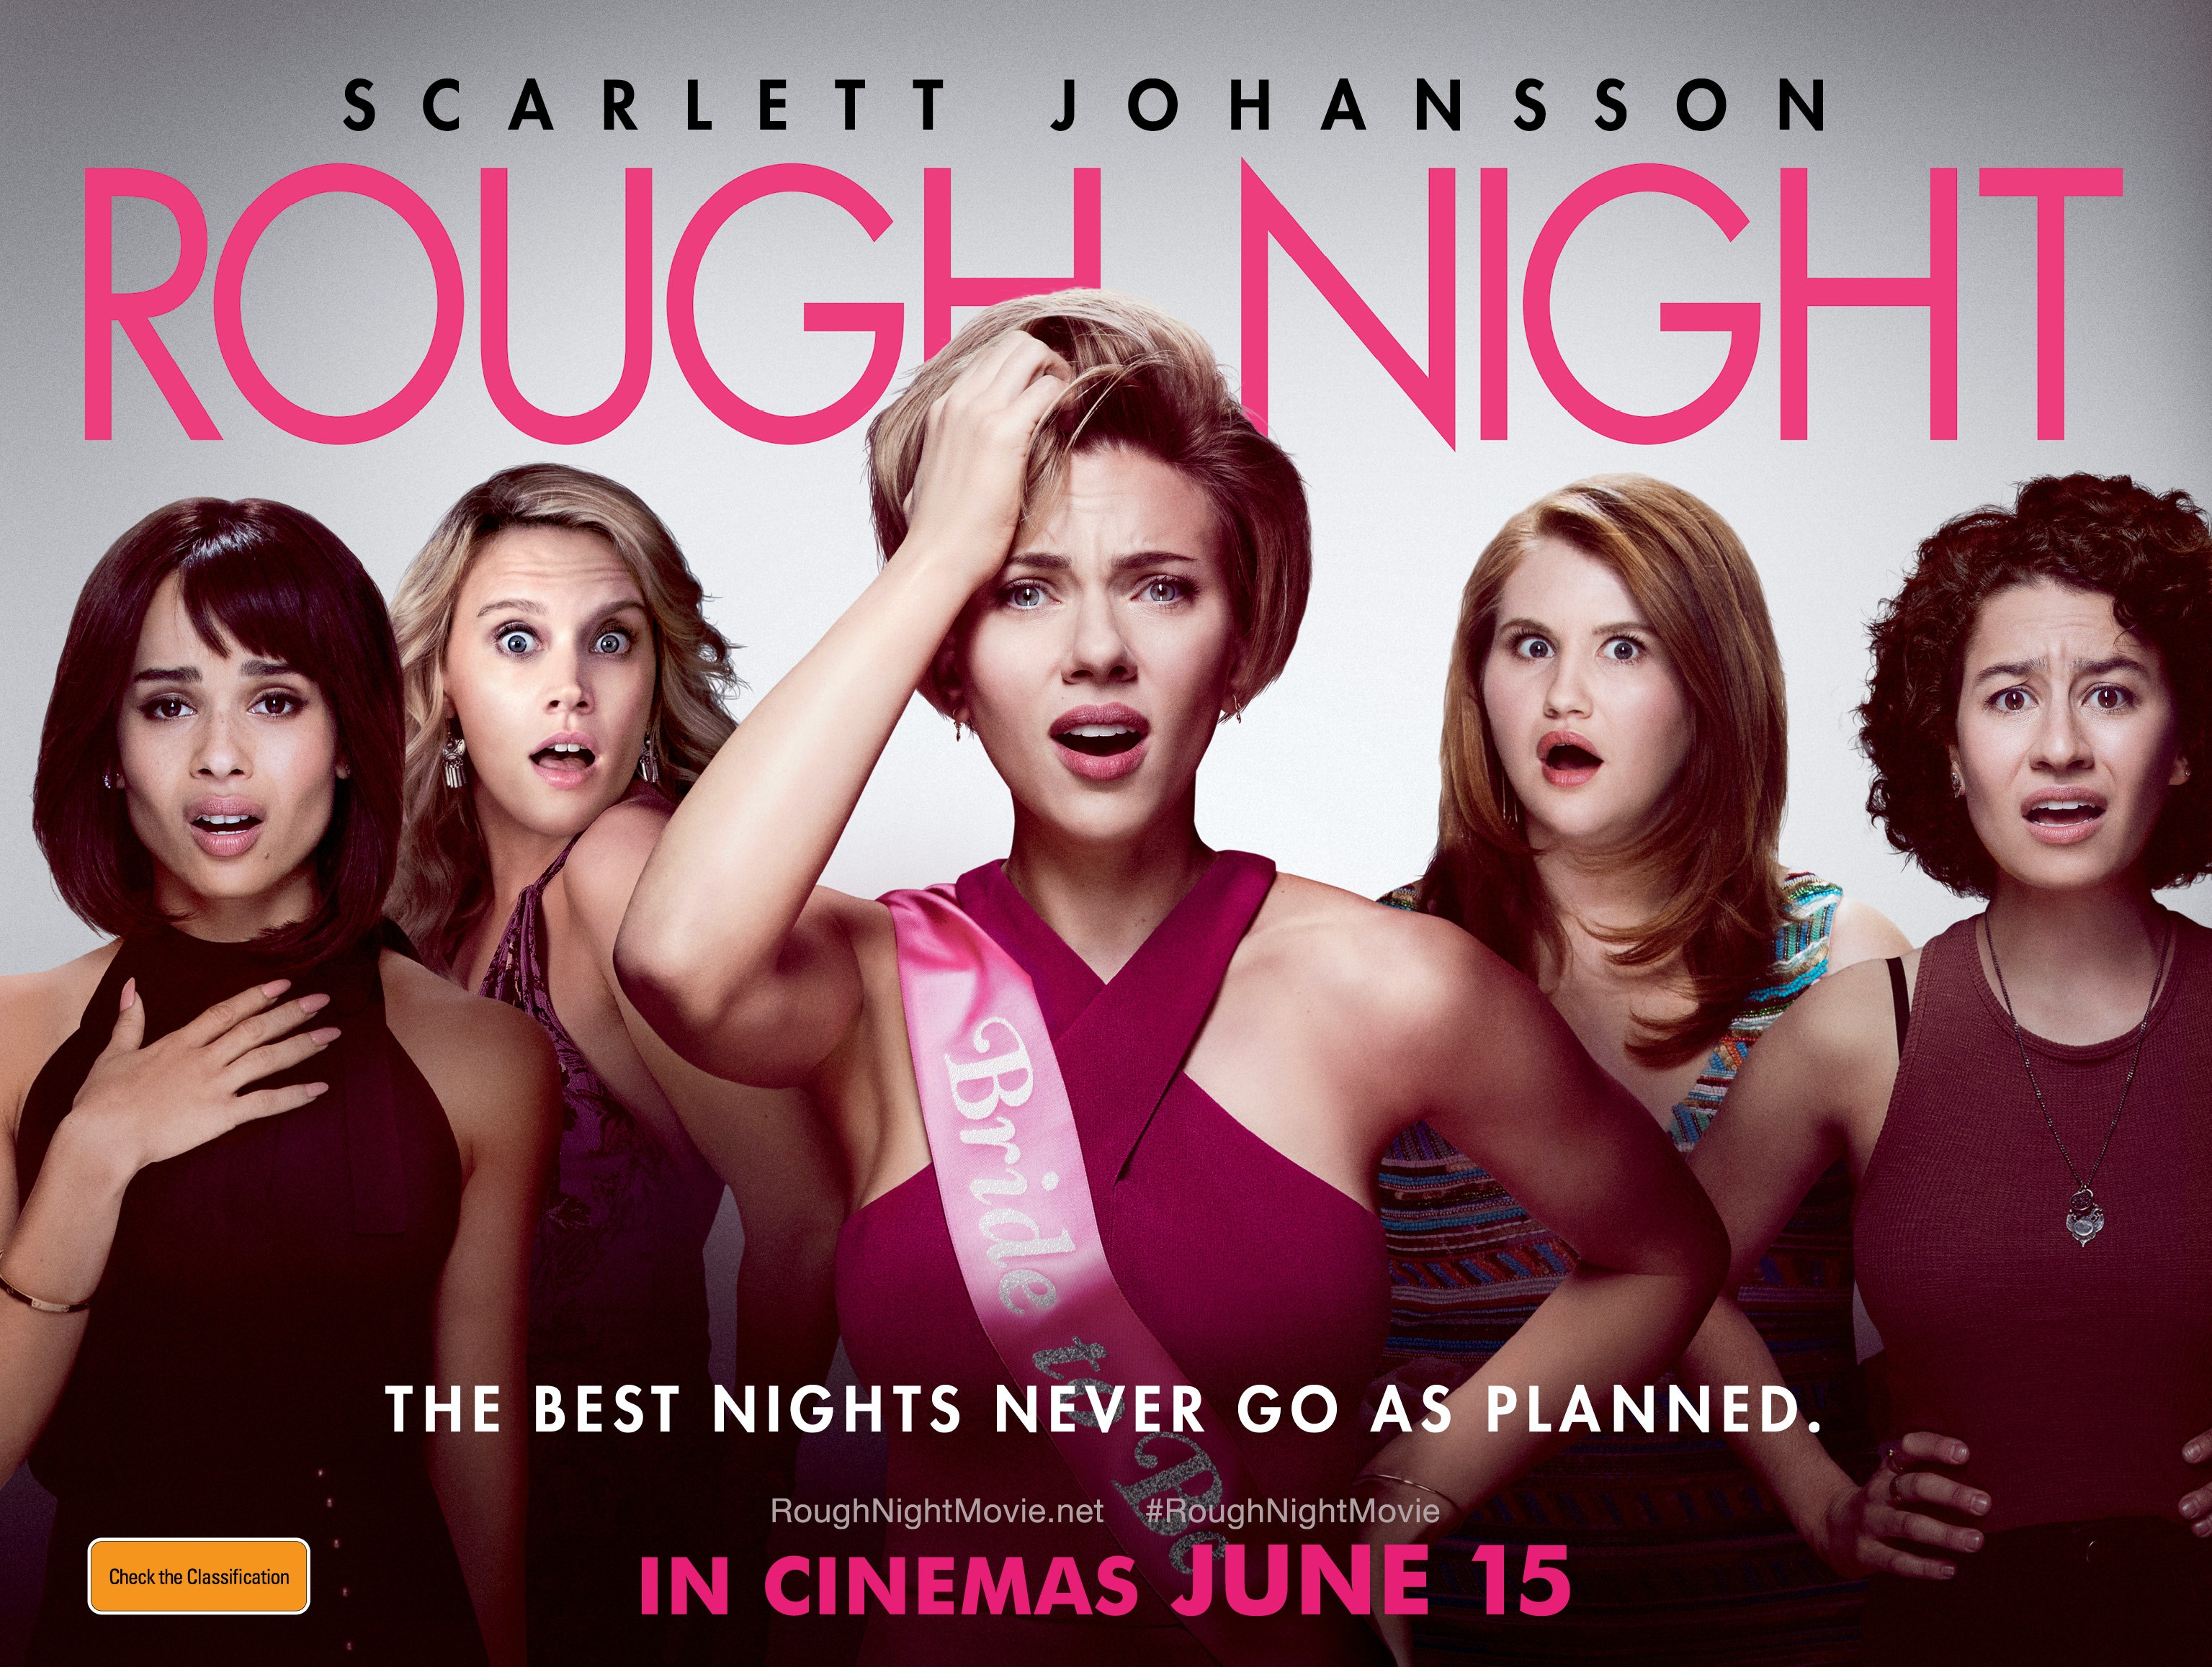 Double Passes to the movie Rough Night  sweepstakes